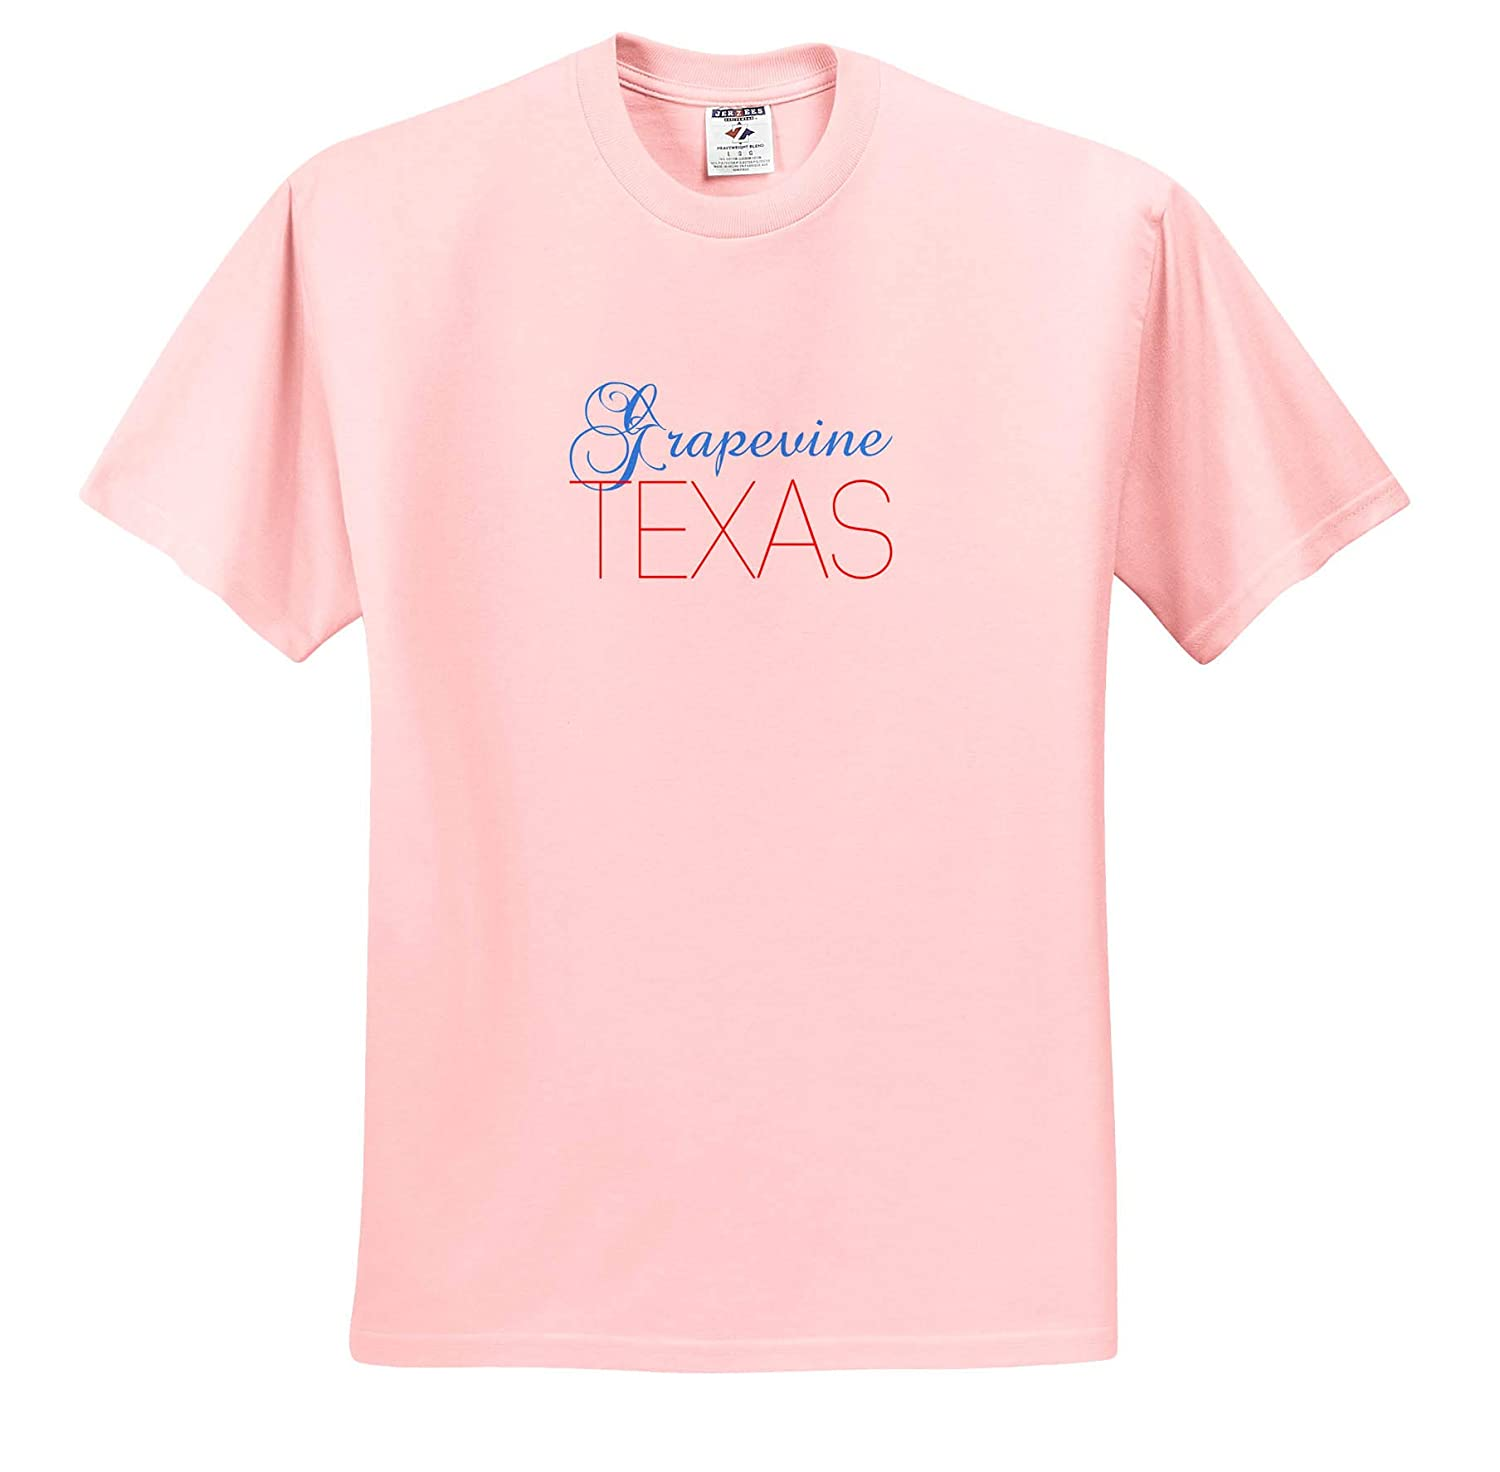 American Cities Texas T-Shirts red Grapevine Texas Blue Text Patriotic Home Town Design 3dRose Alexis Design